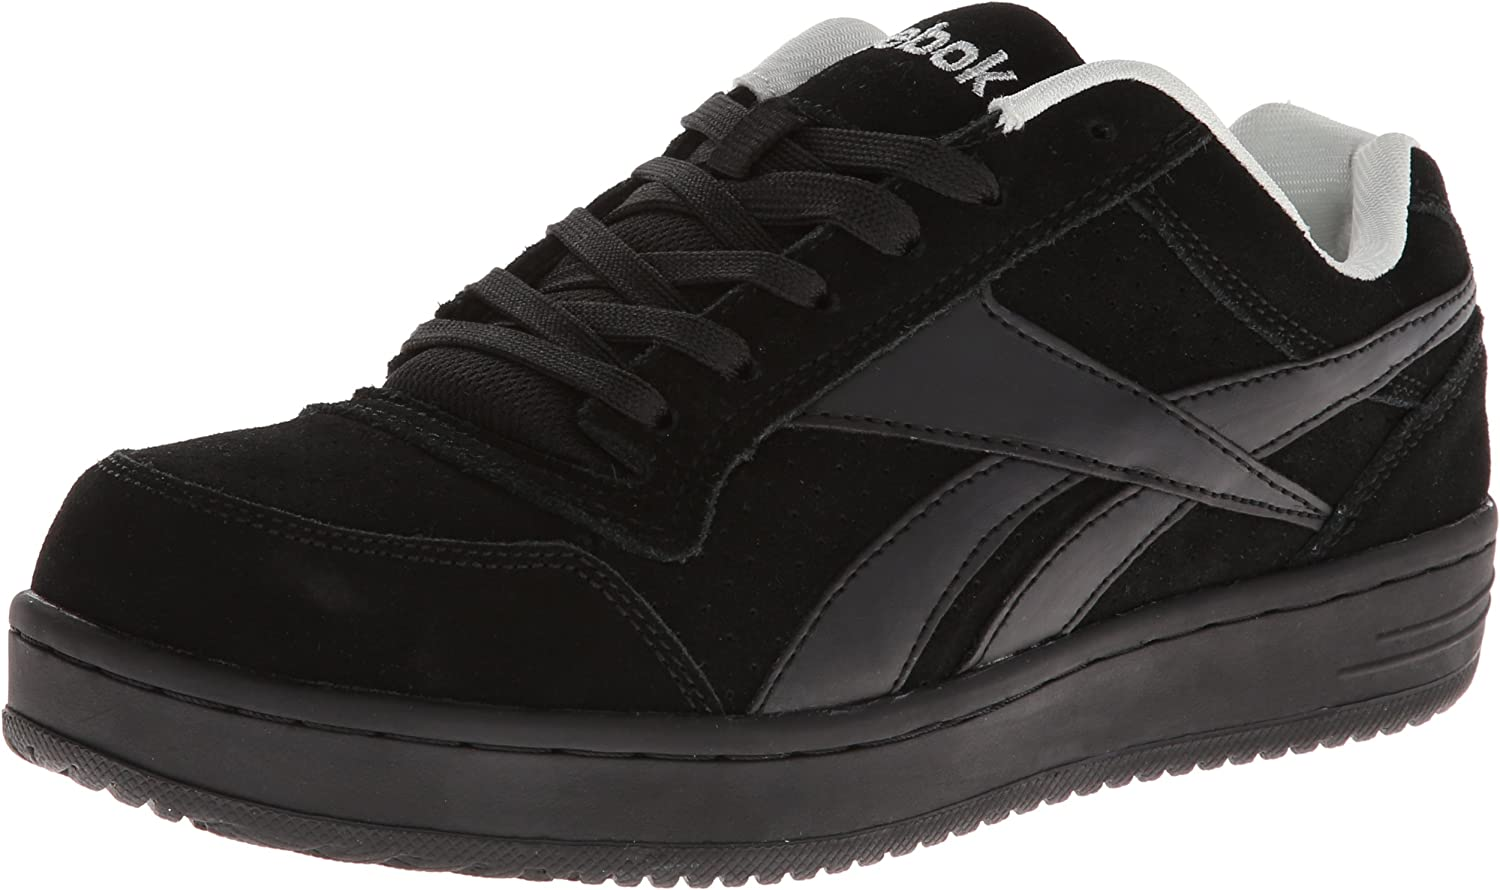 Reebok Work Women's Soyay RB191 Athletic Safety shoes Black